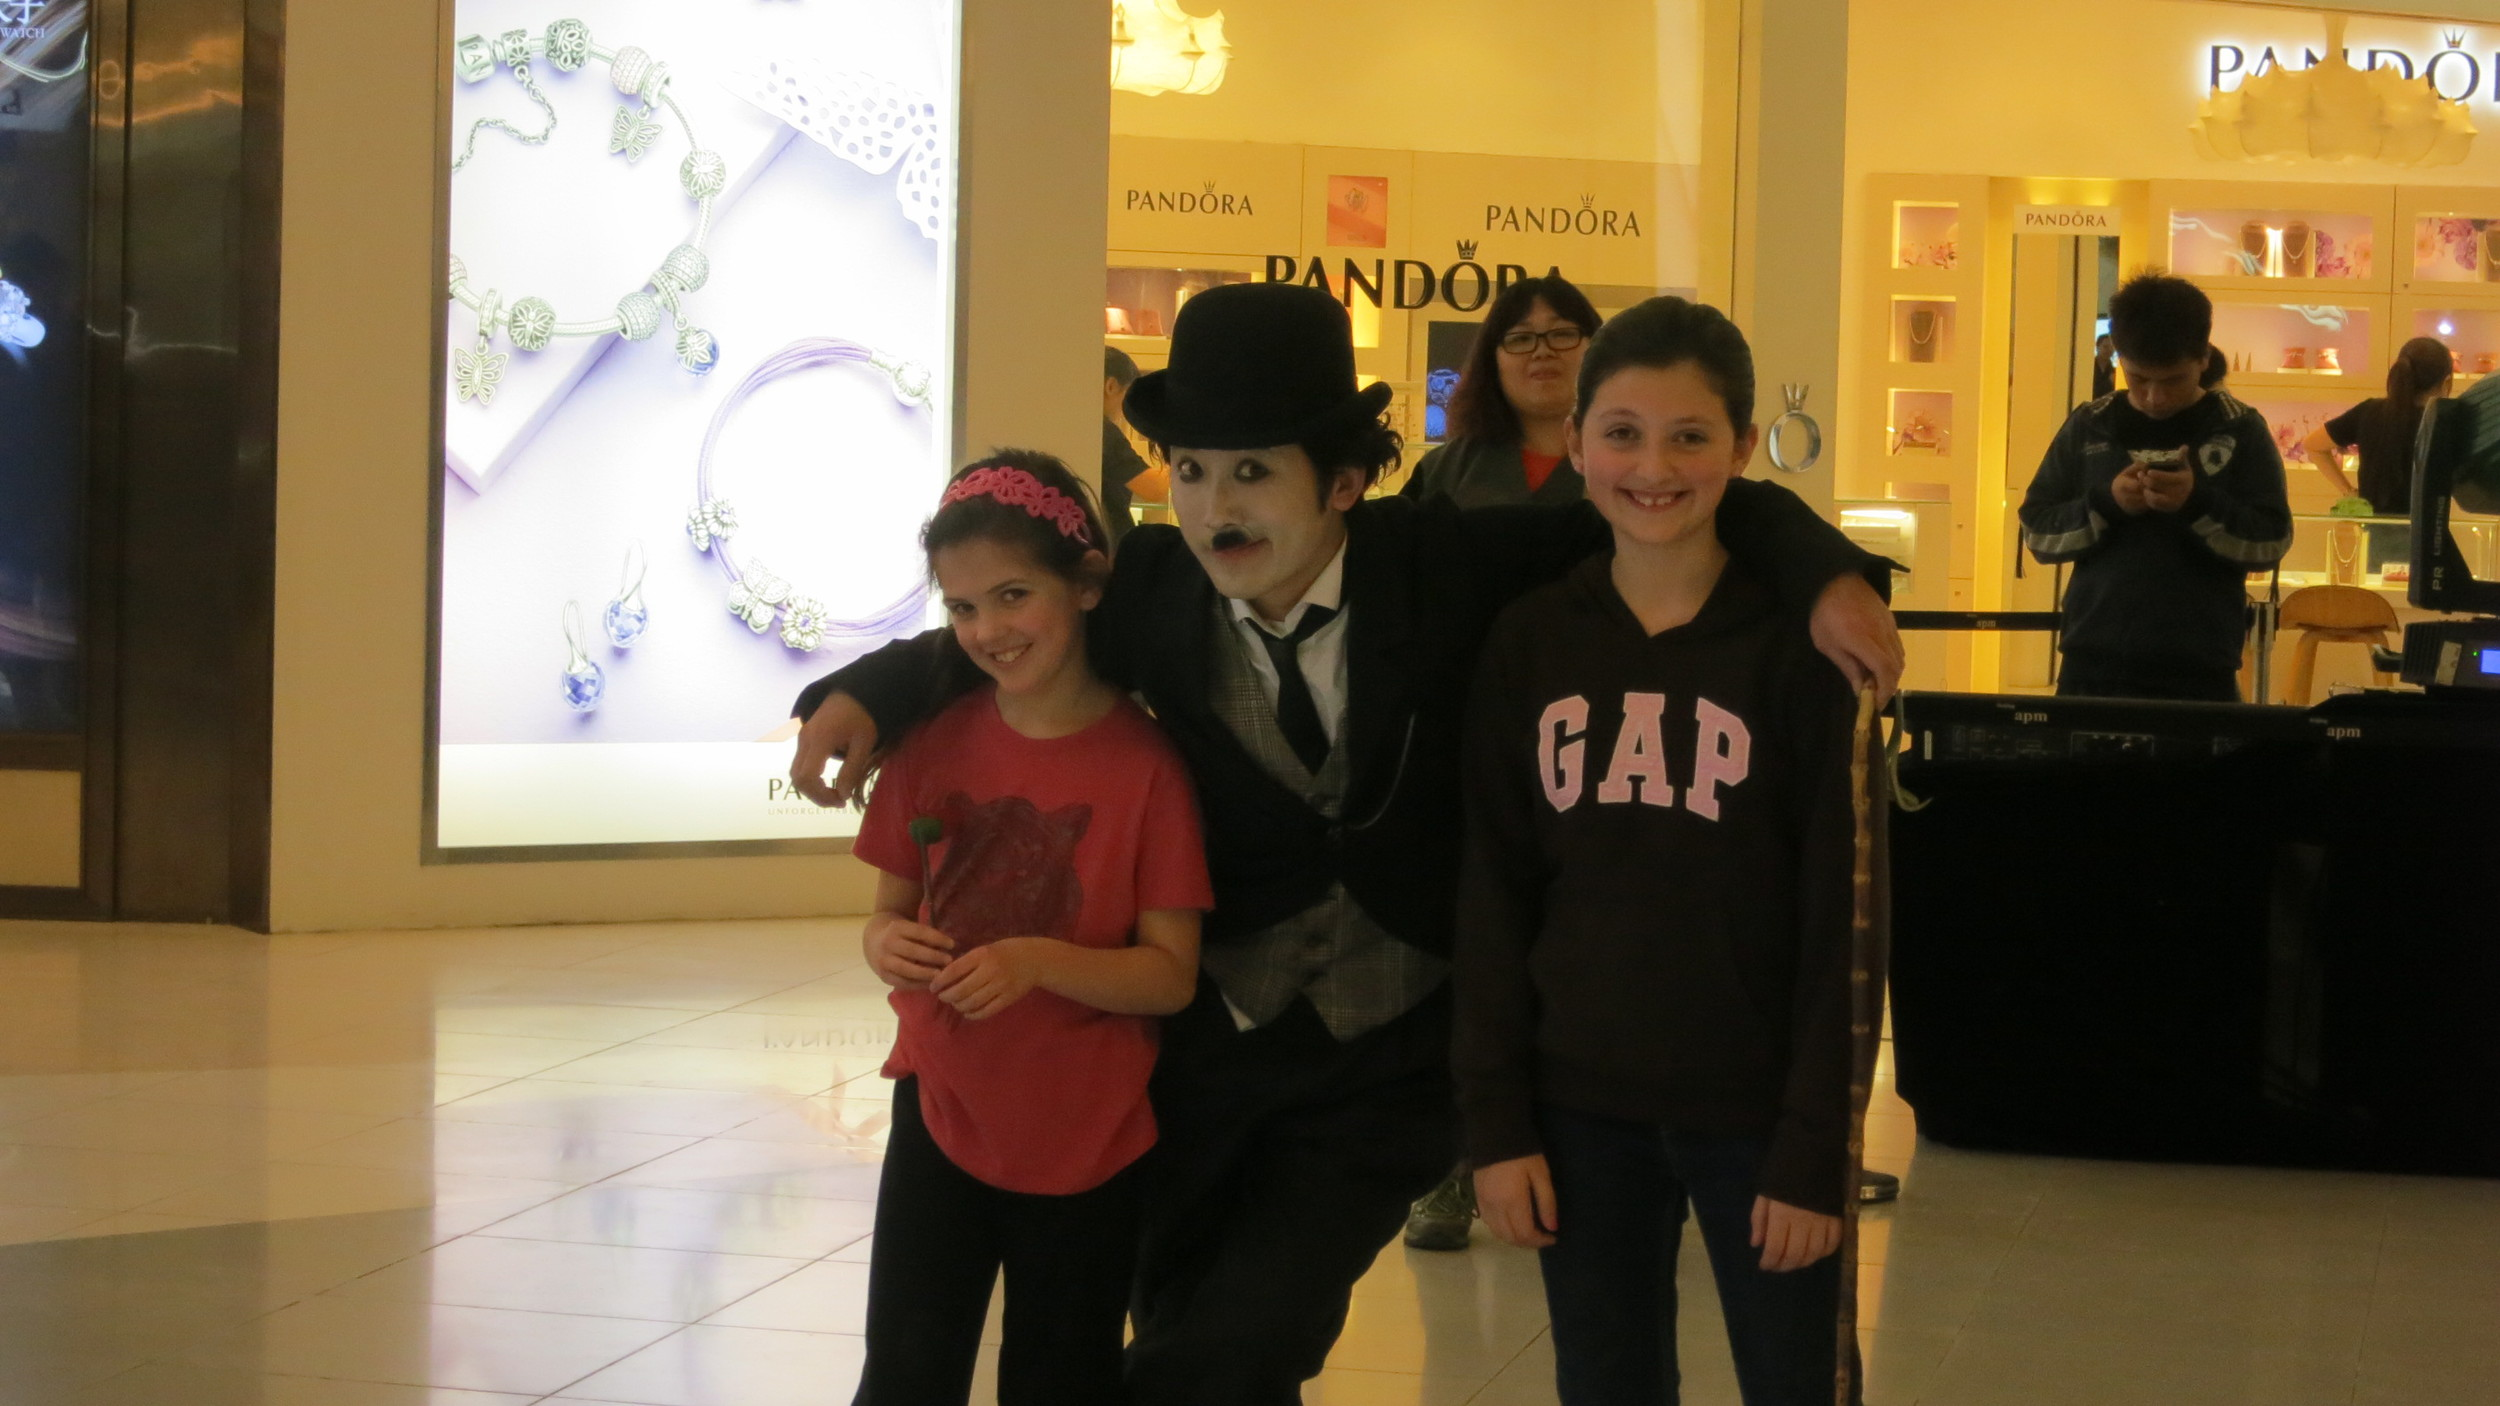 Abigail and her new buddy Isabella danced with Charlie Chapman in the mall!